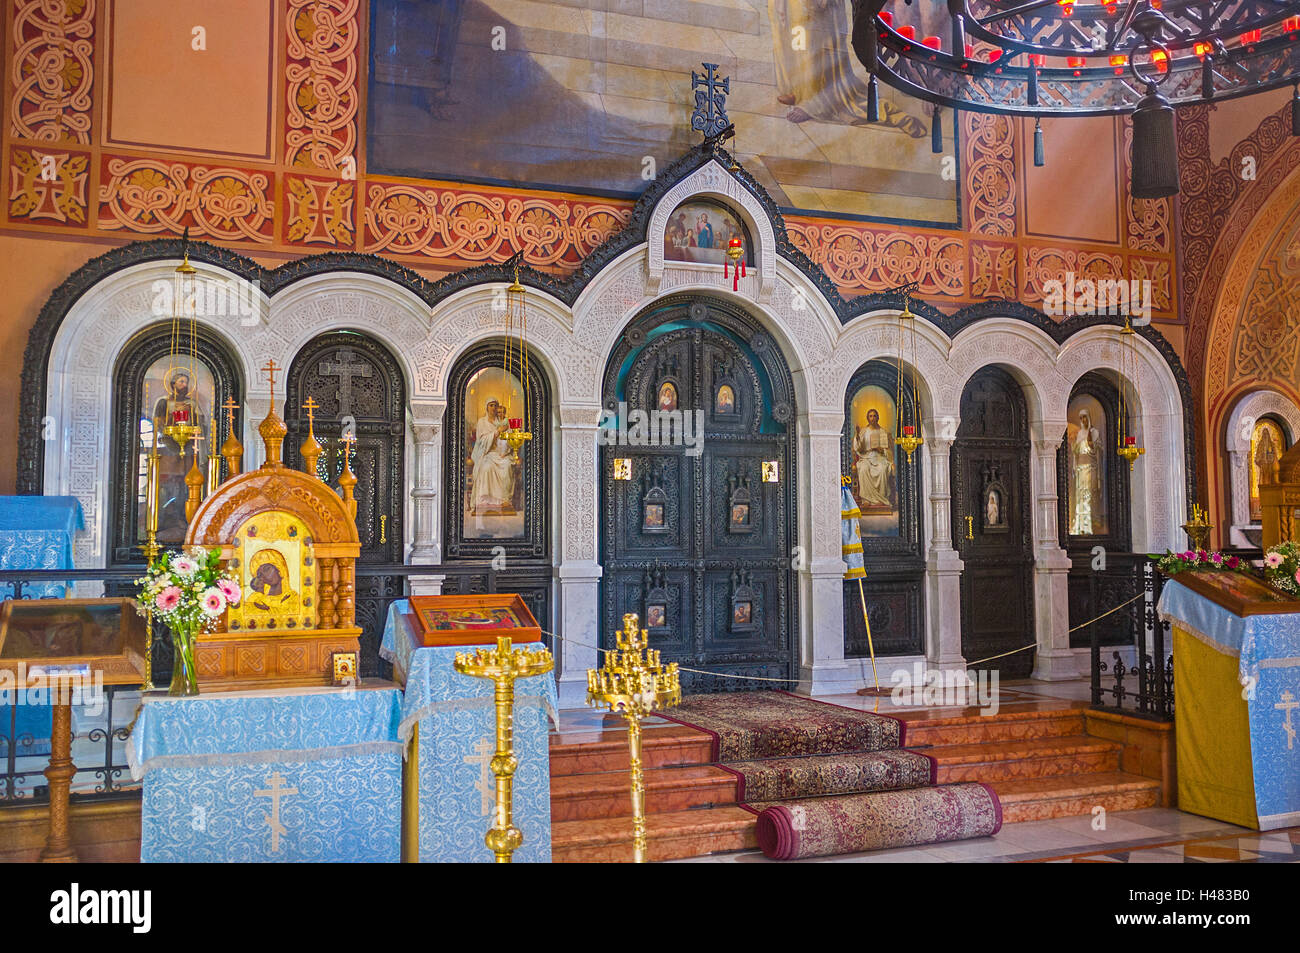 The iconostasis in Russian Orthodox Church of Mary Magdalene made of dark wood with white stone frames - Stock Image